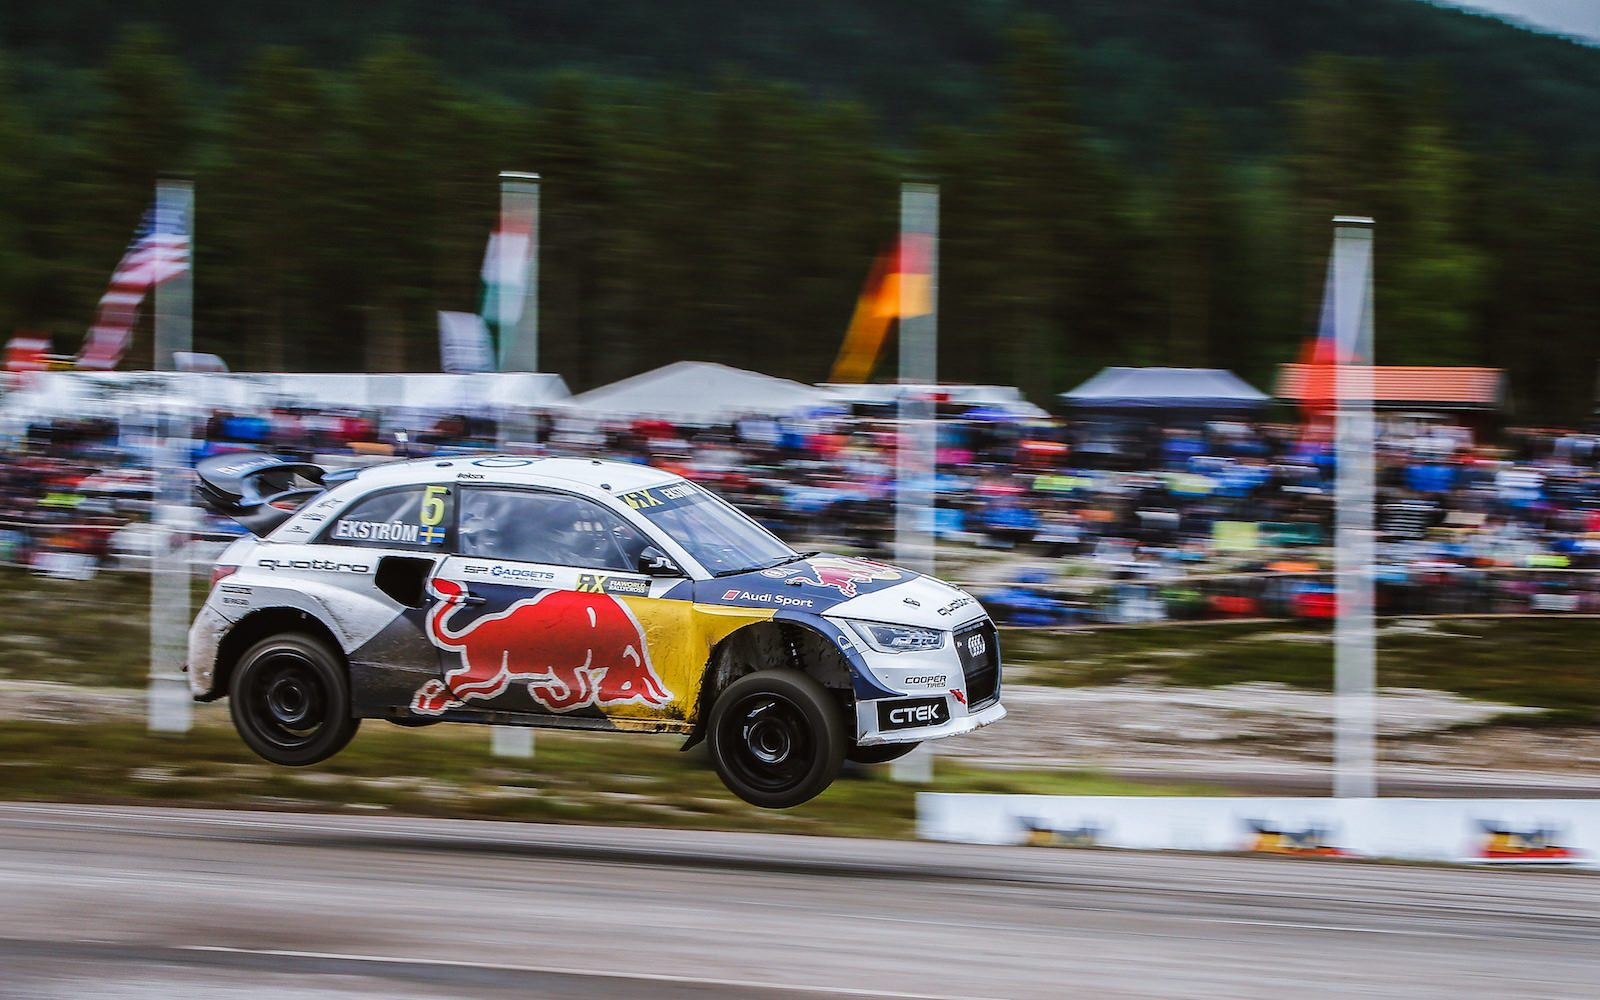 Audi is interested in giving wings to electric rallycross cars ...